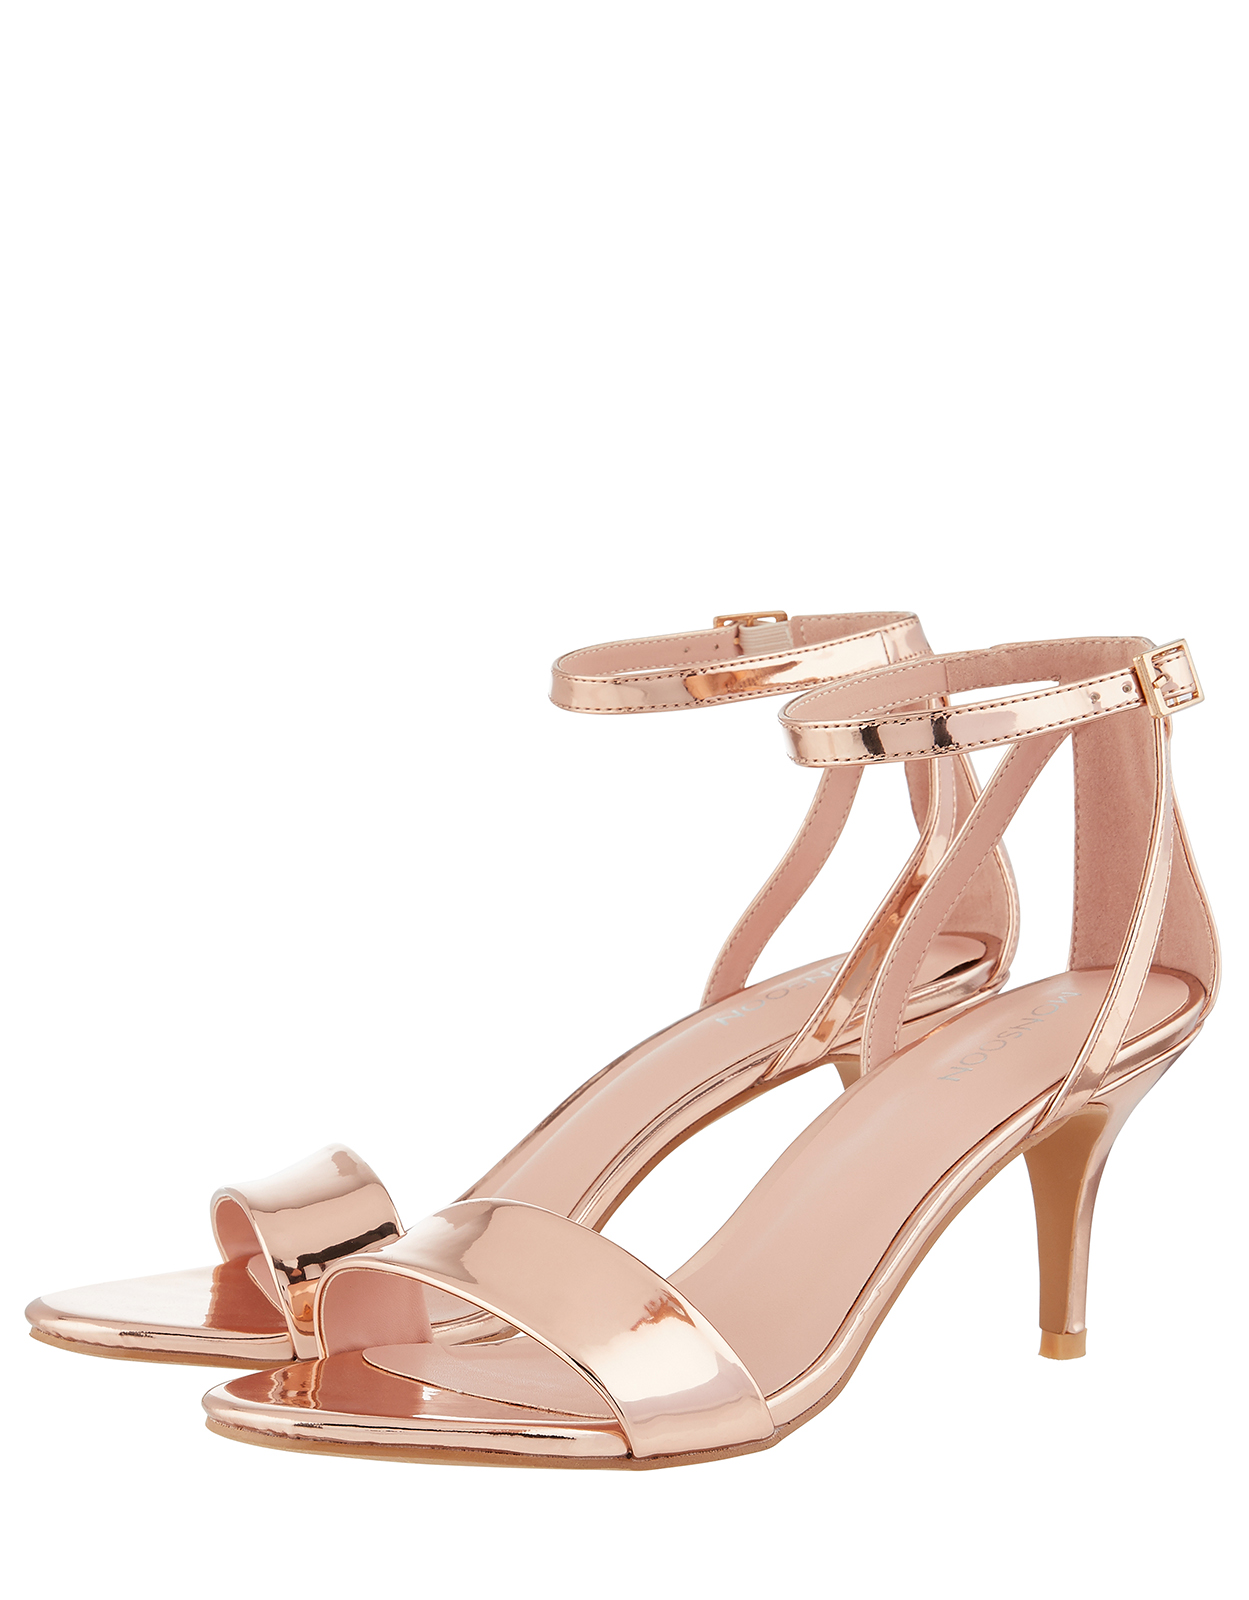 Monsoon Scarlett Strappy Mirror Heeled Sandals